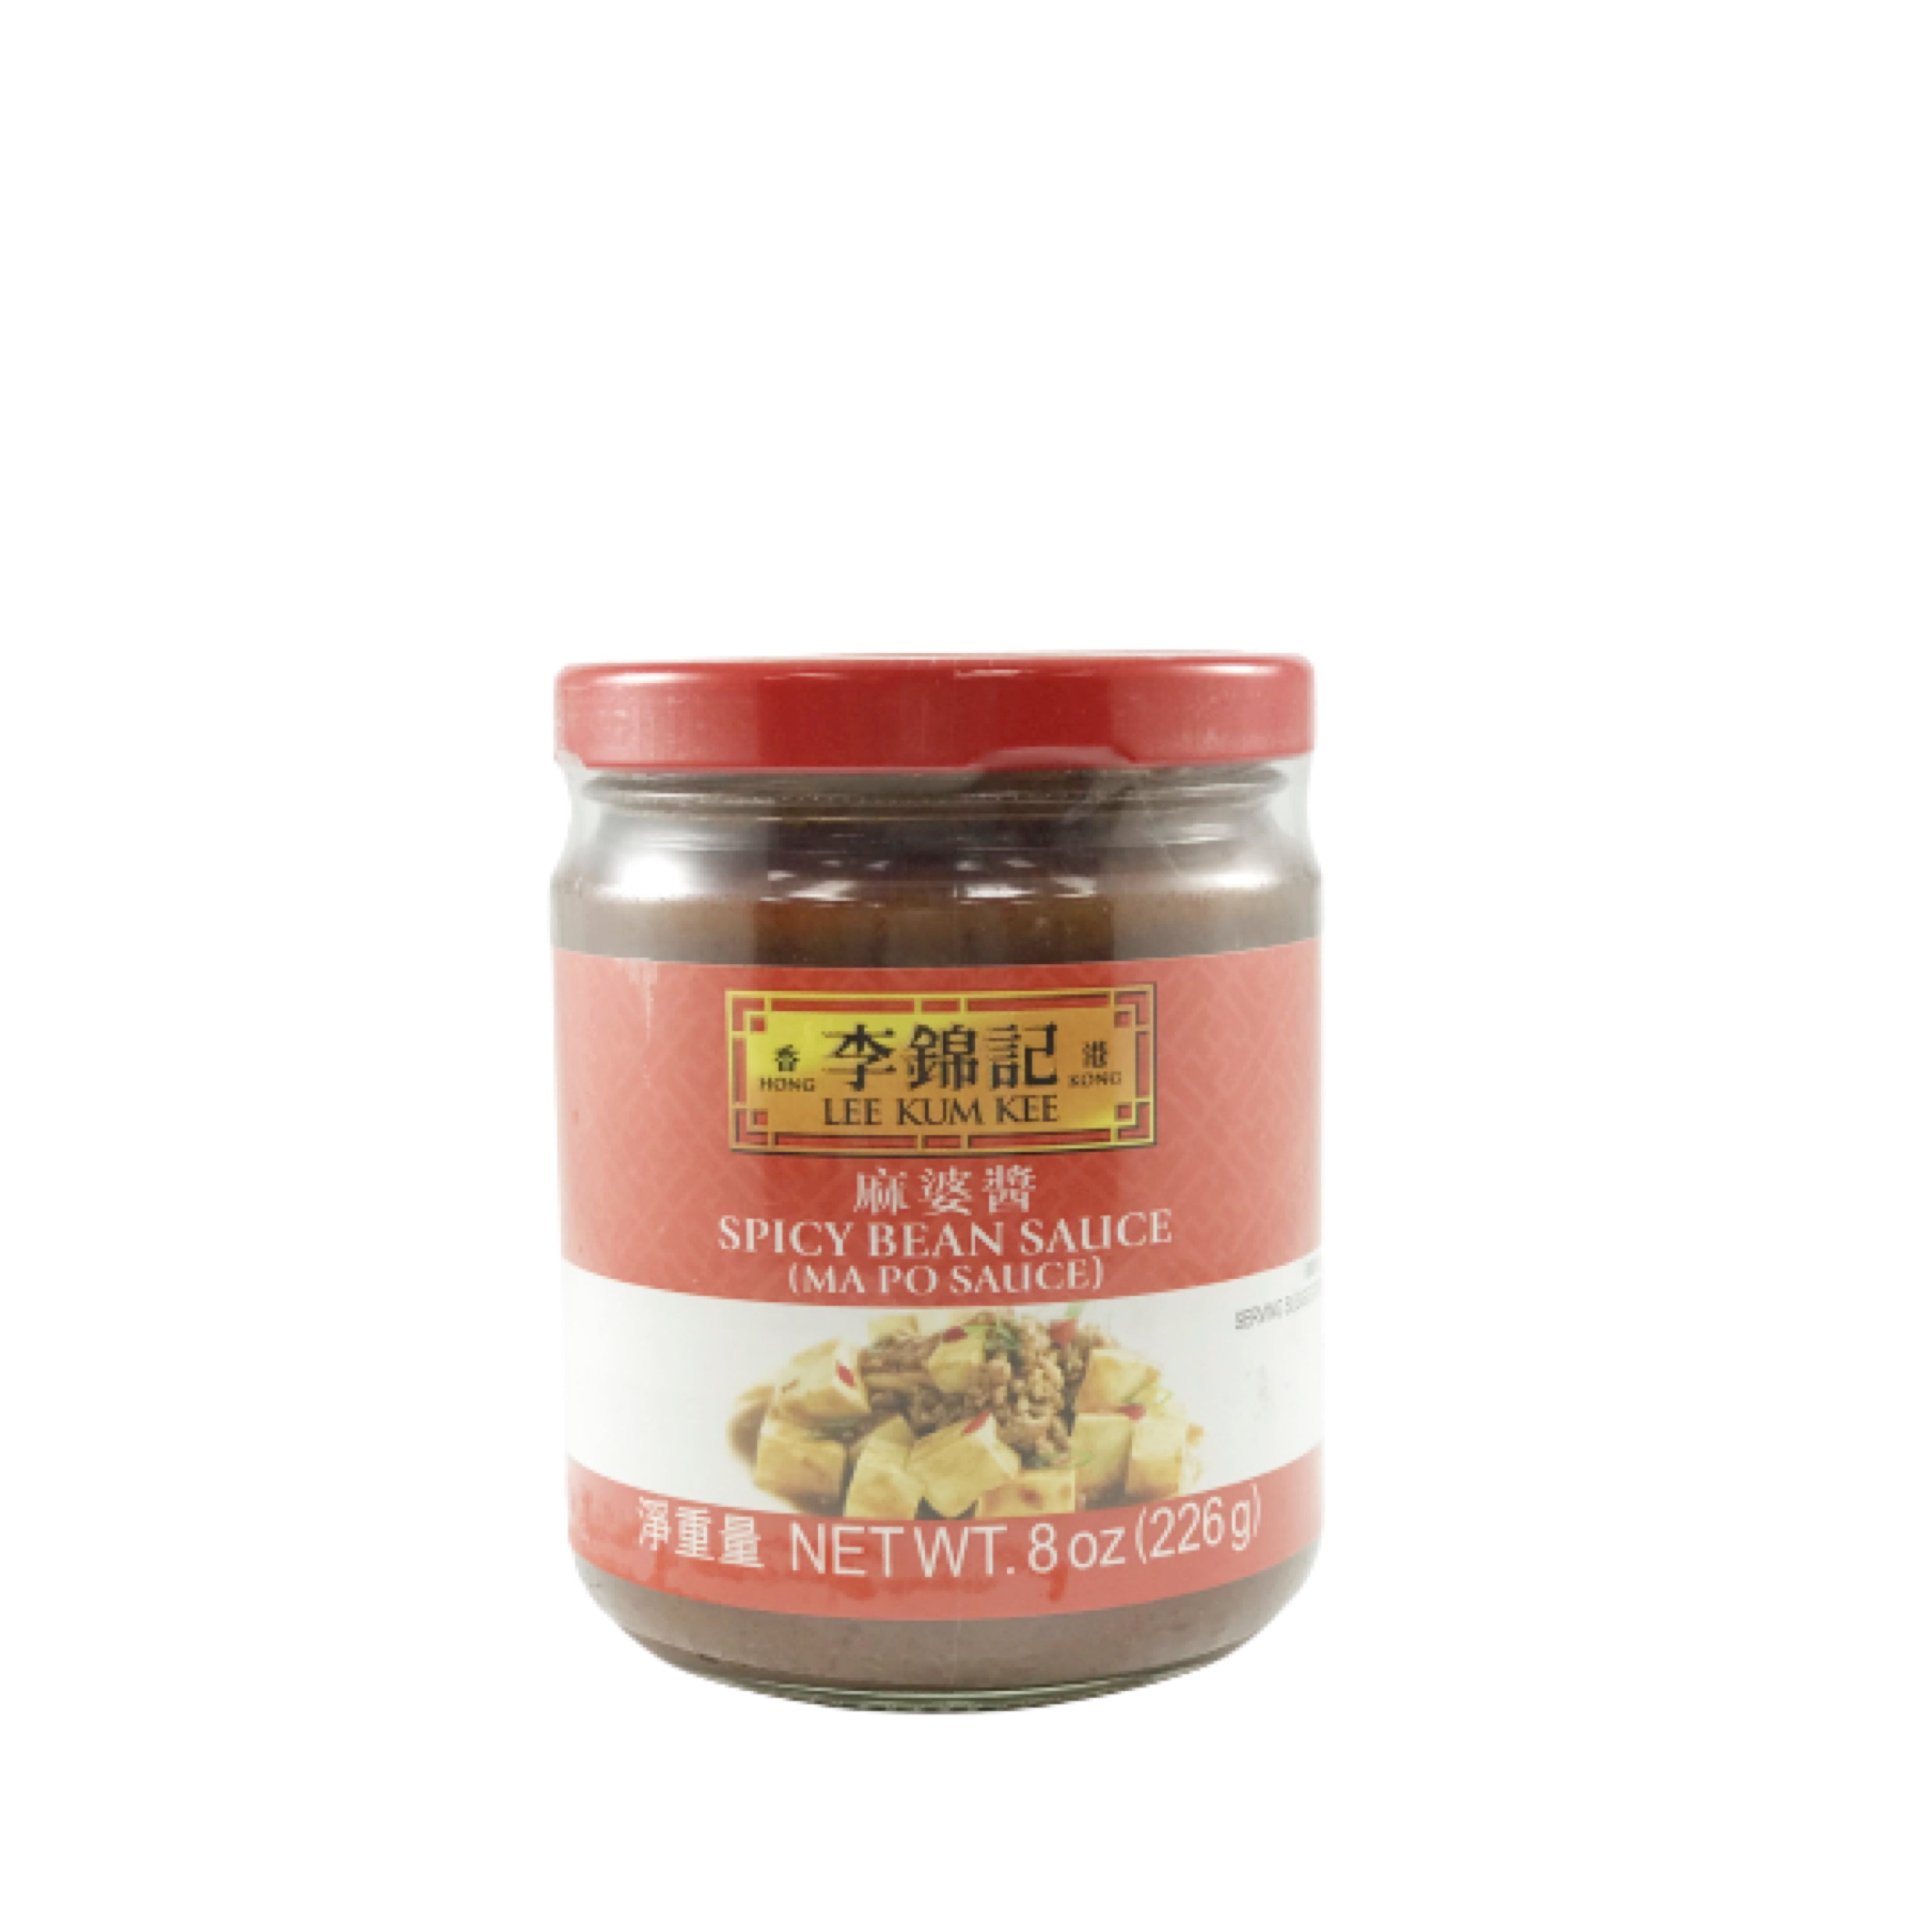 Lee Kum Kee Spicy Bean Sauce 李錦記 麻婆醬 8oz